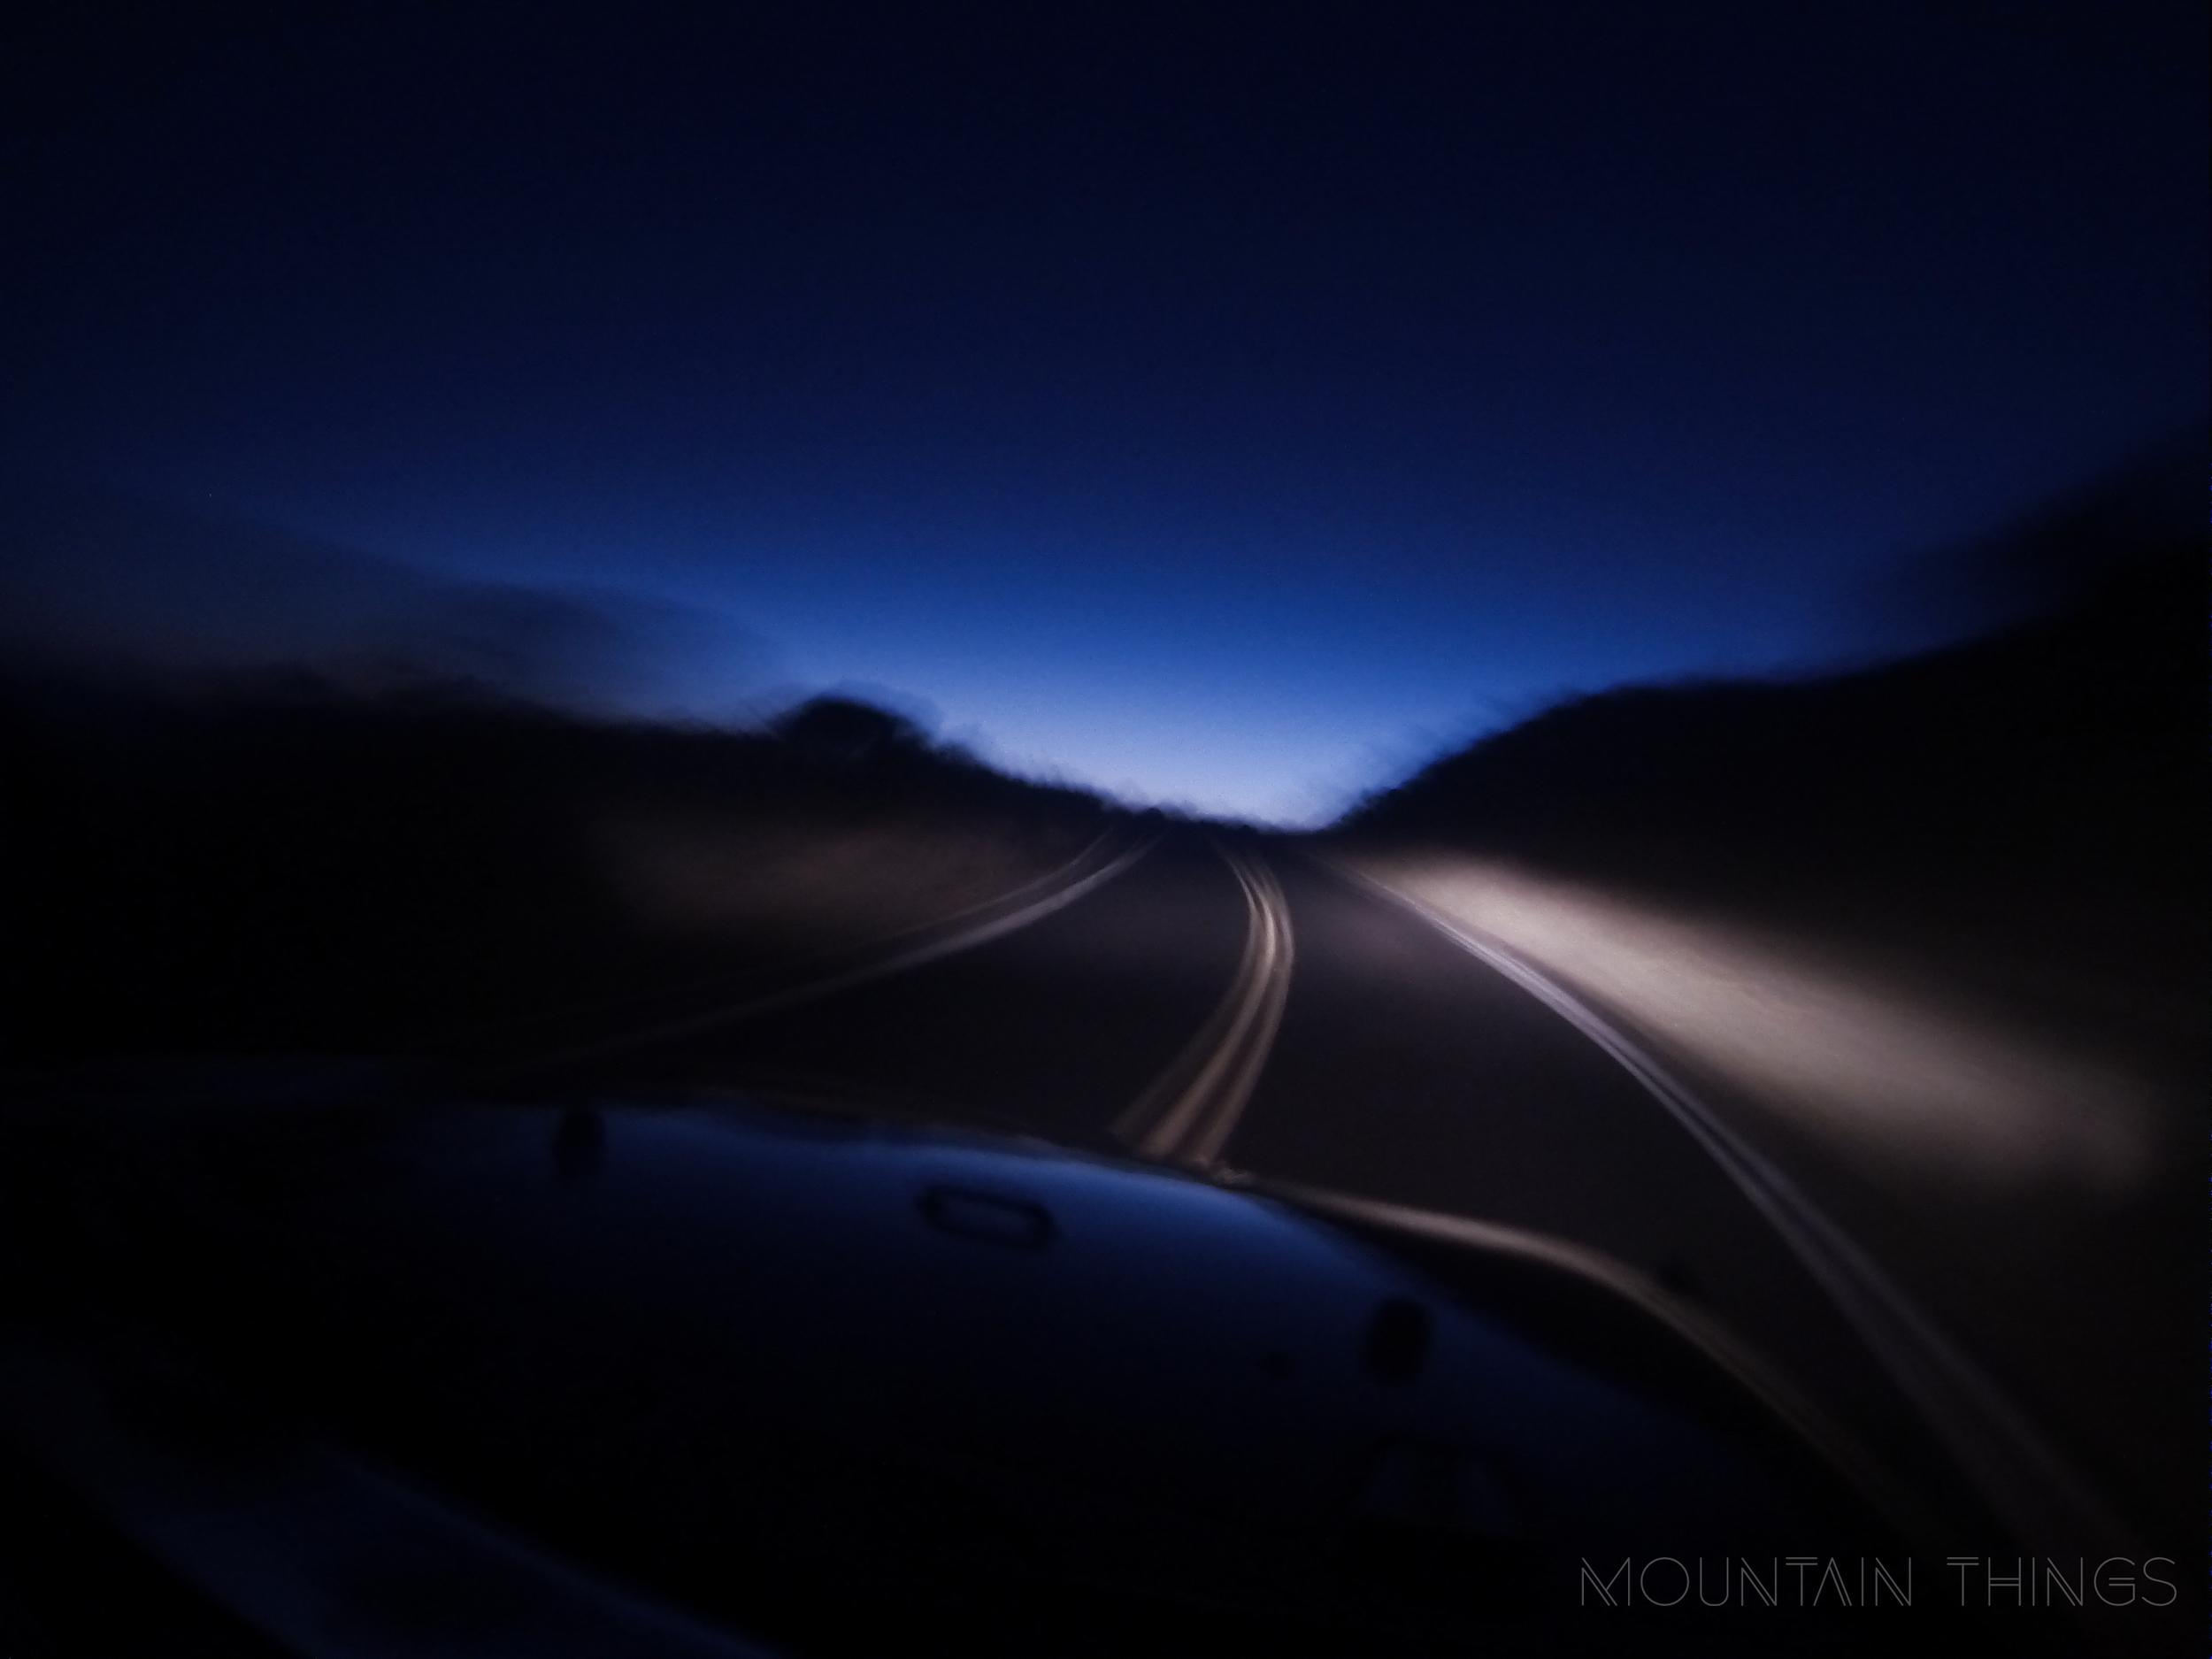 First blues of twilight on Haleakala road. This photo also showcases how wonky GoPro photos can get in dark conditions.